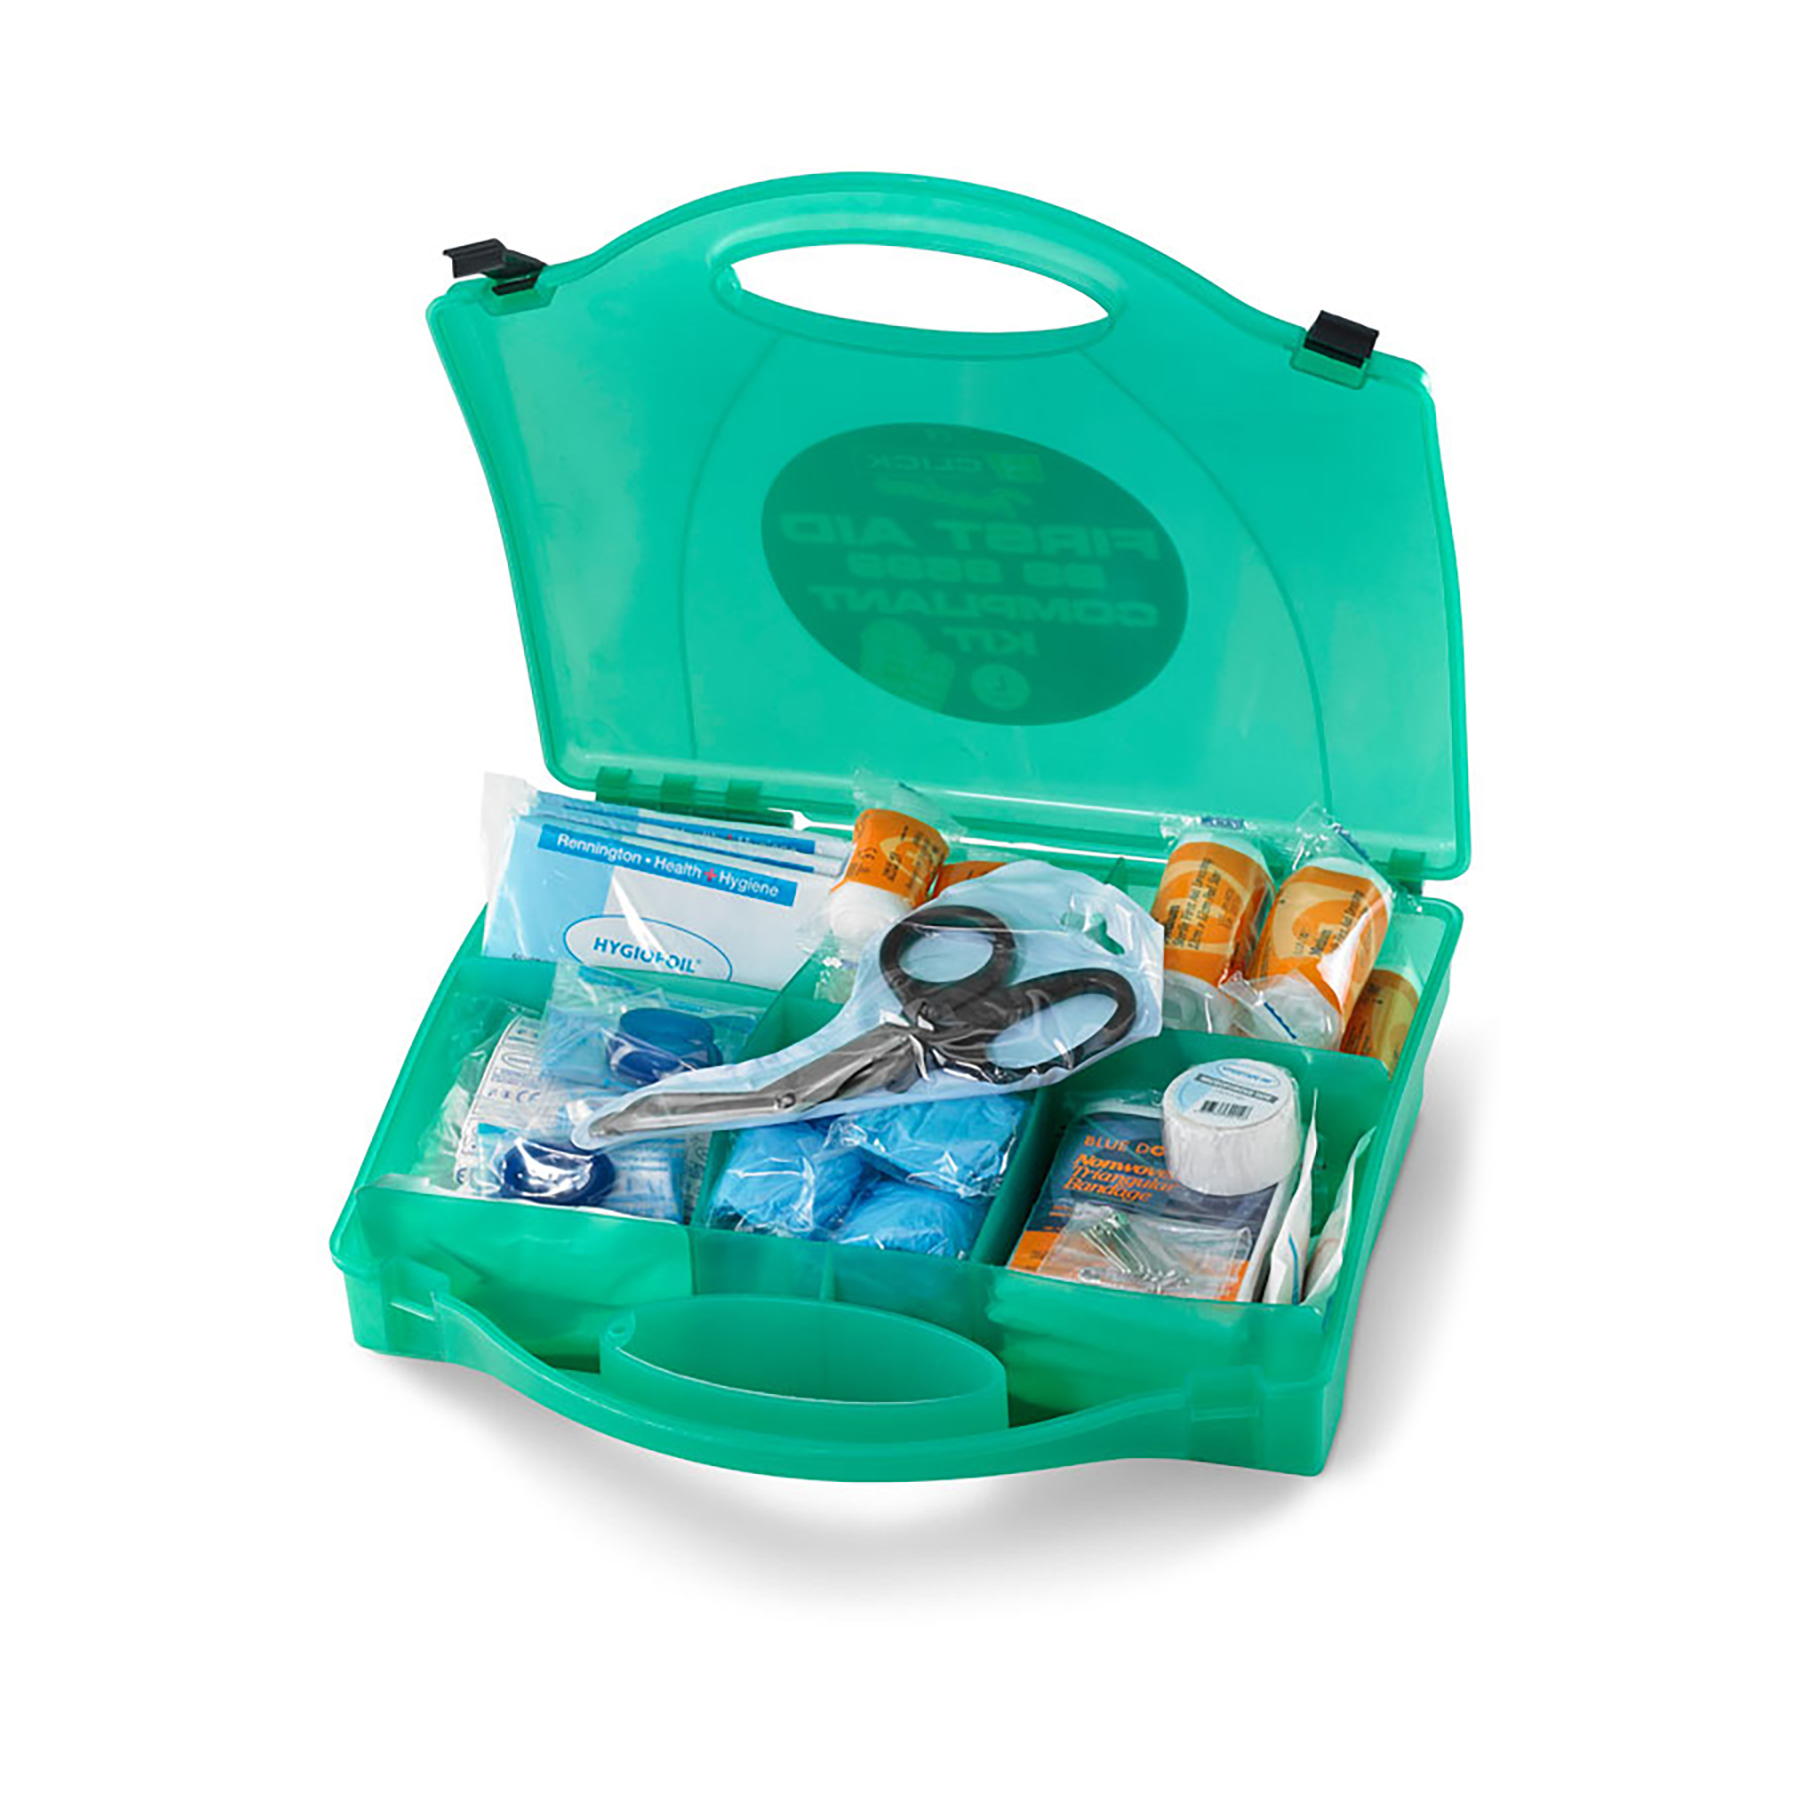 5 Star Facilities First Aid Kit BSI 1-50 Person